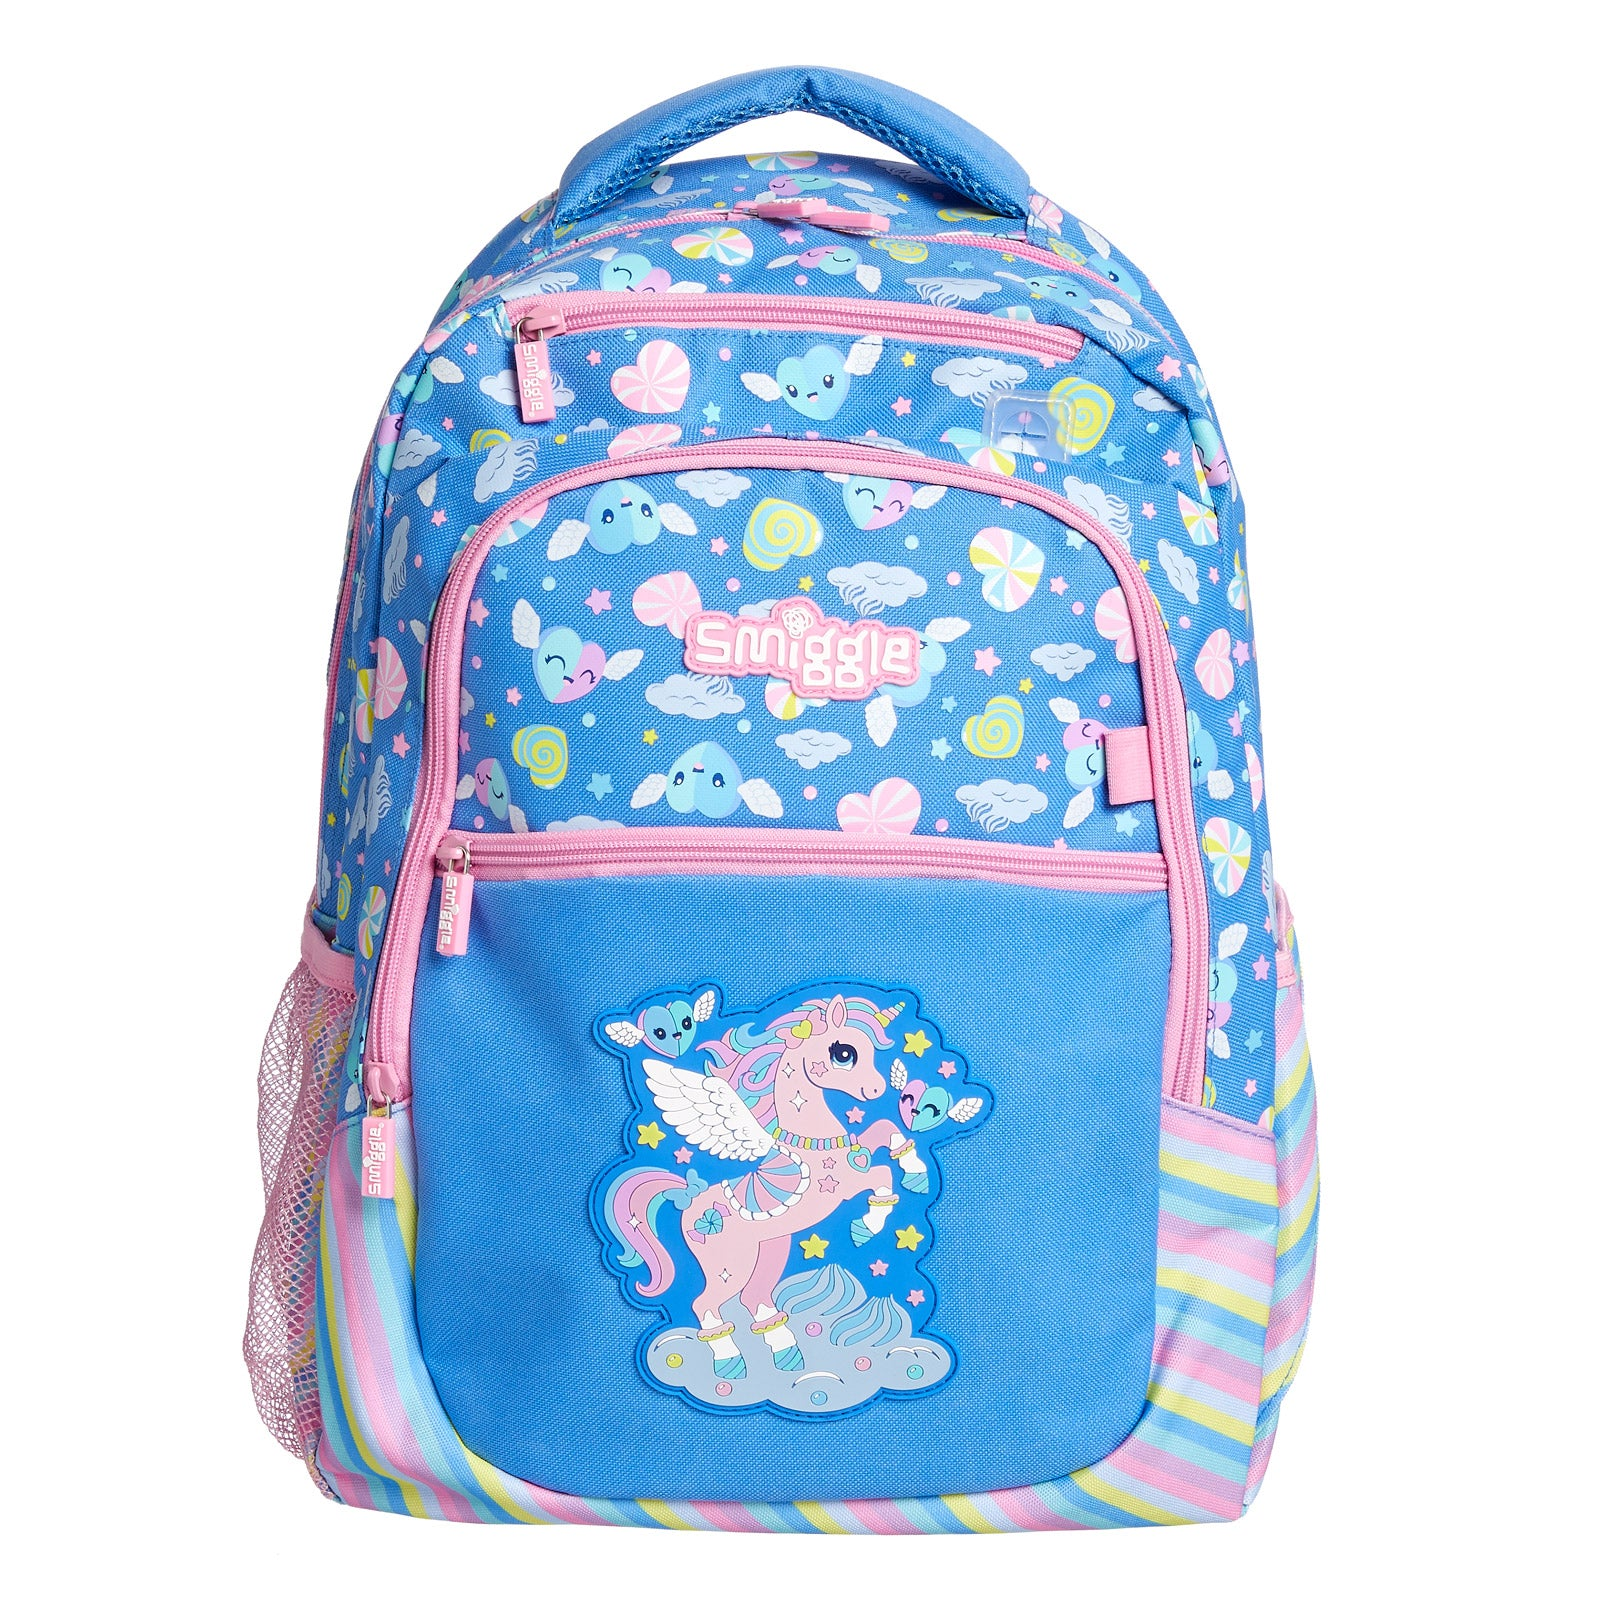 SMIGGLE - DEJA VU BACKPACK PT2 CONFLOWER - MyVaniteeCase